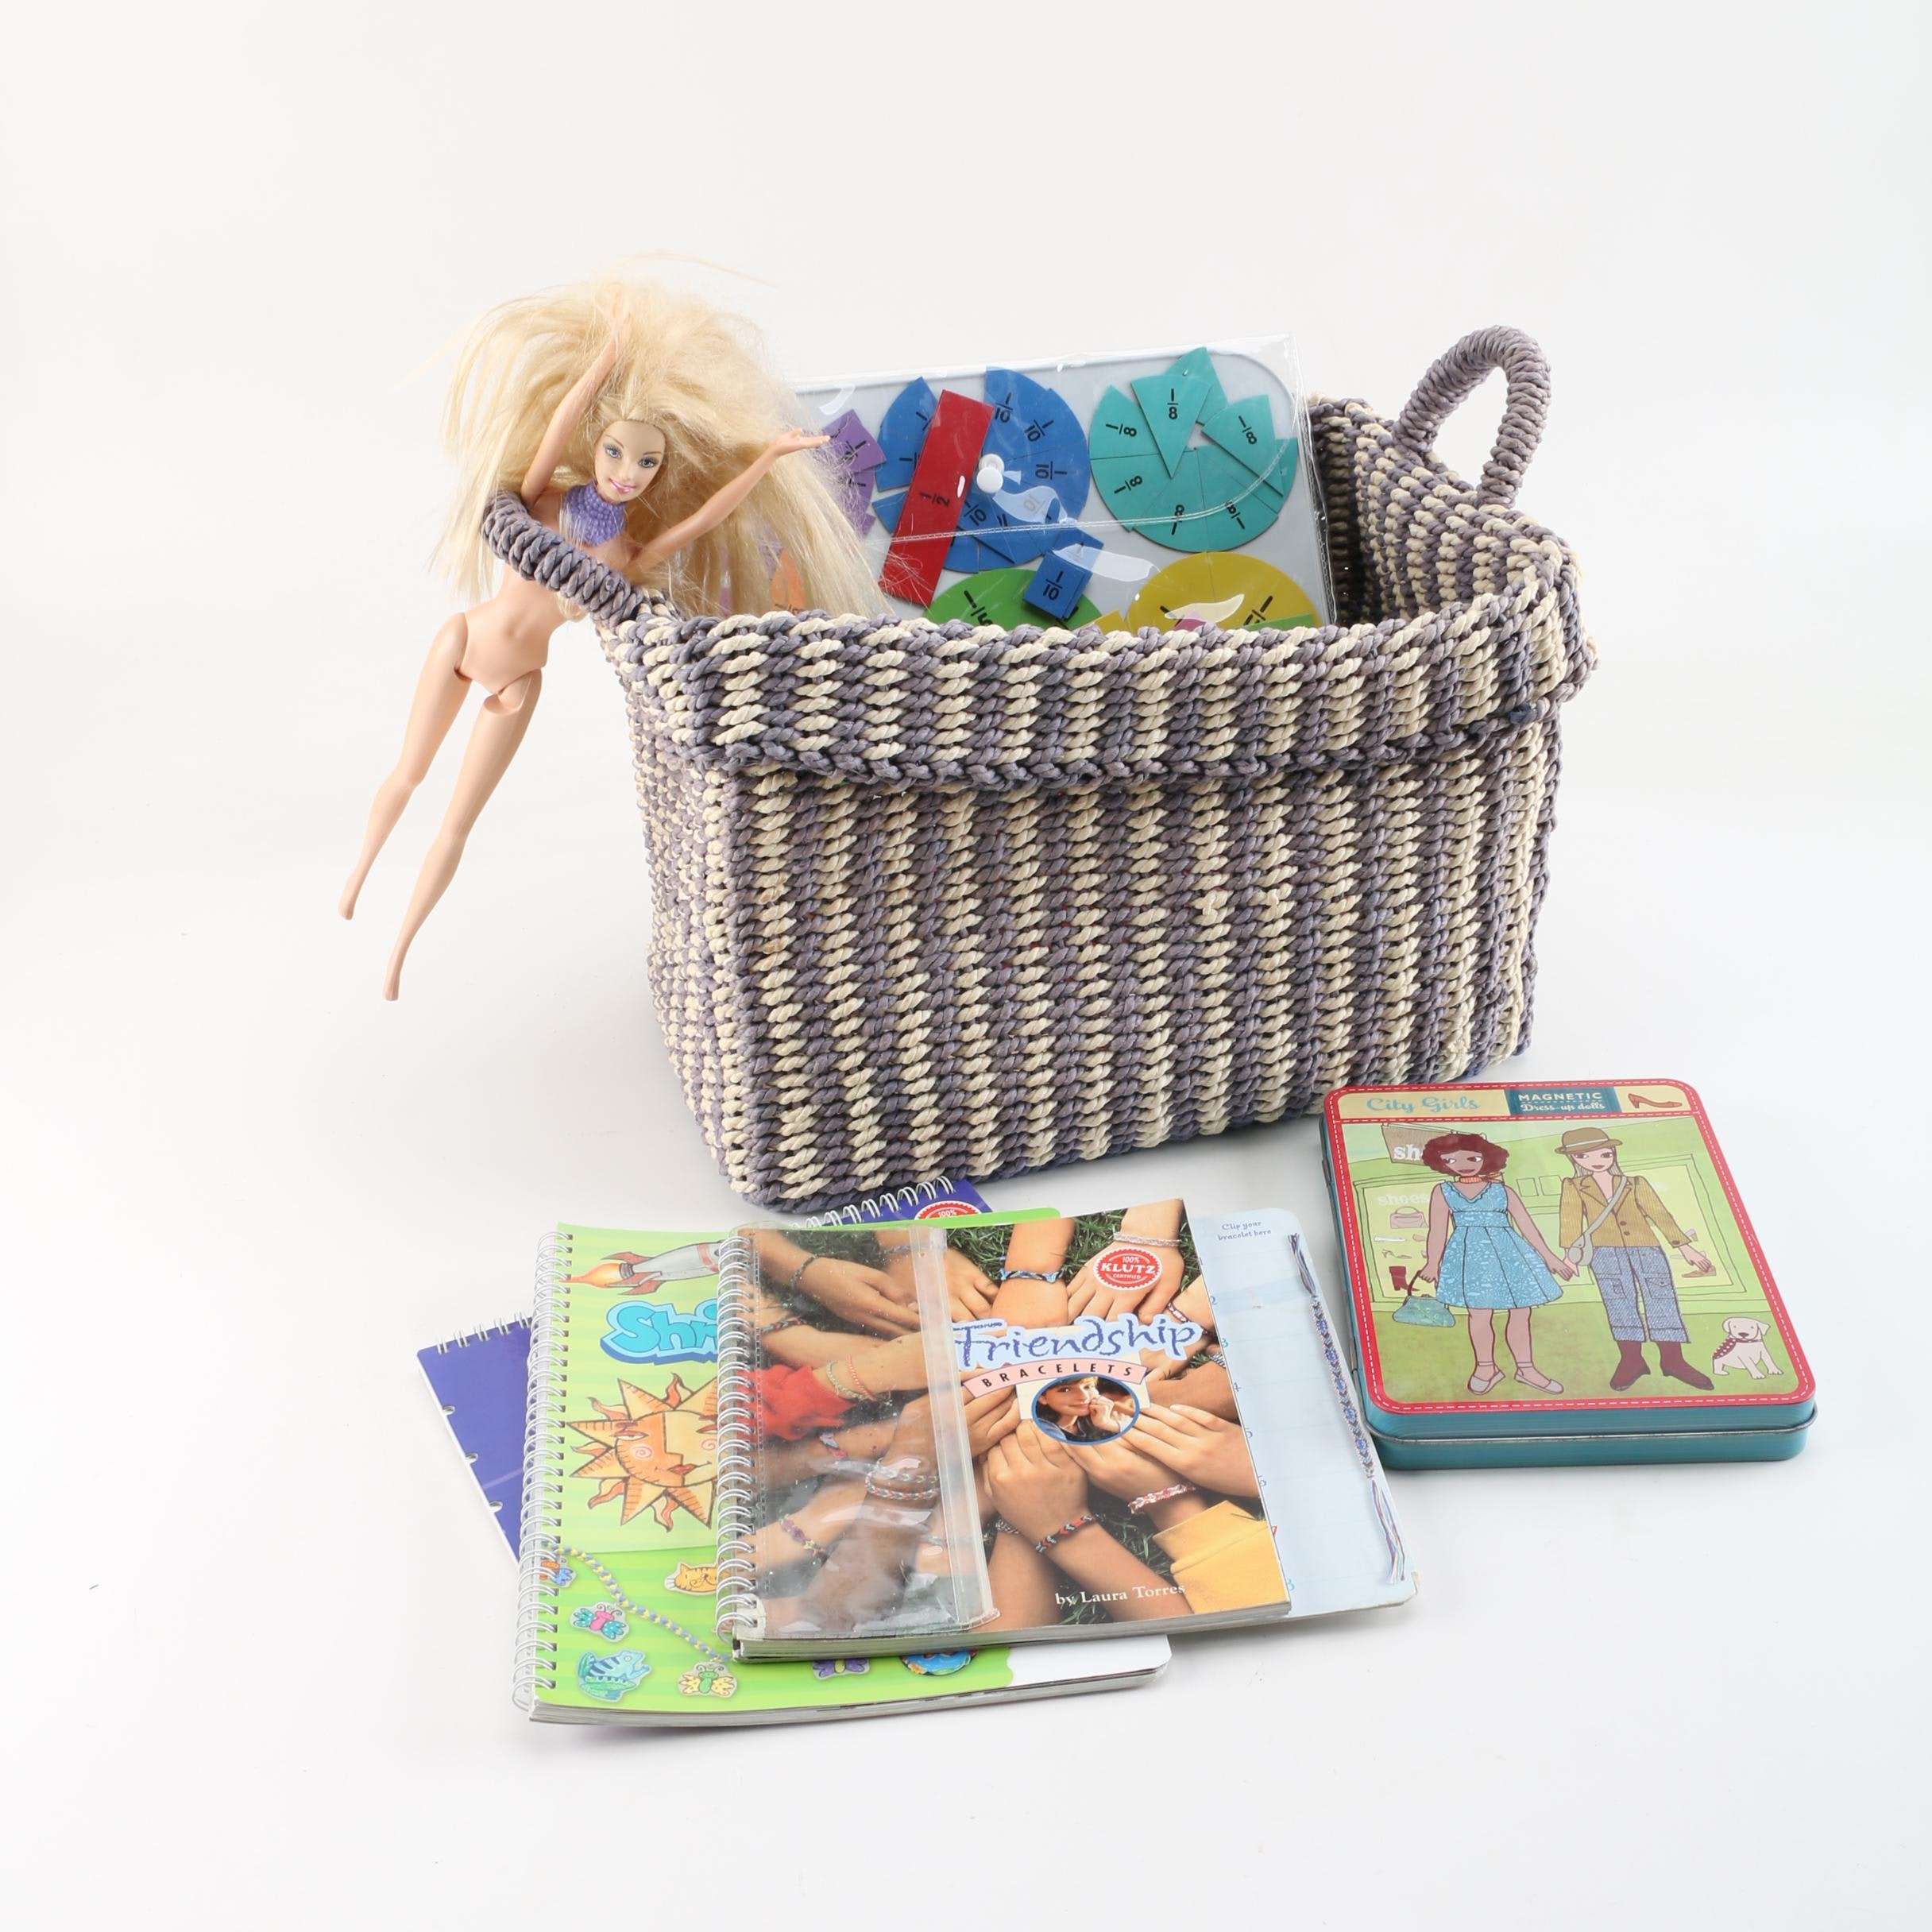 Woven Basket With Children's Crafts Books and a Doll